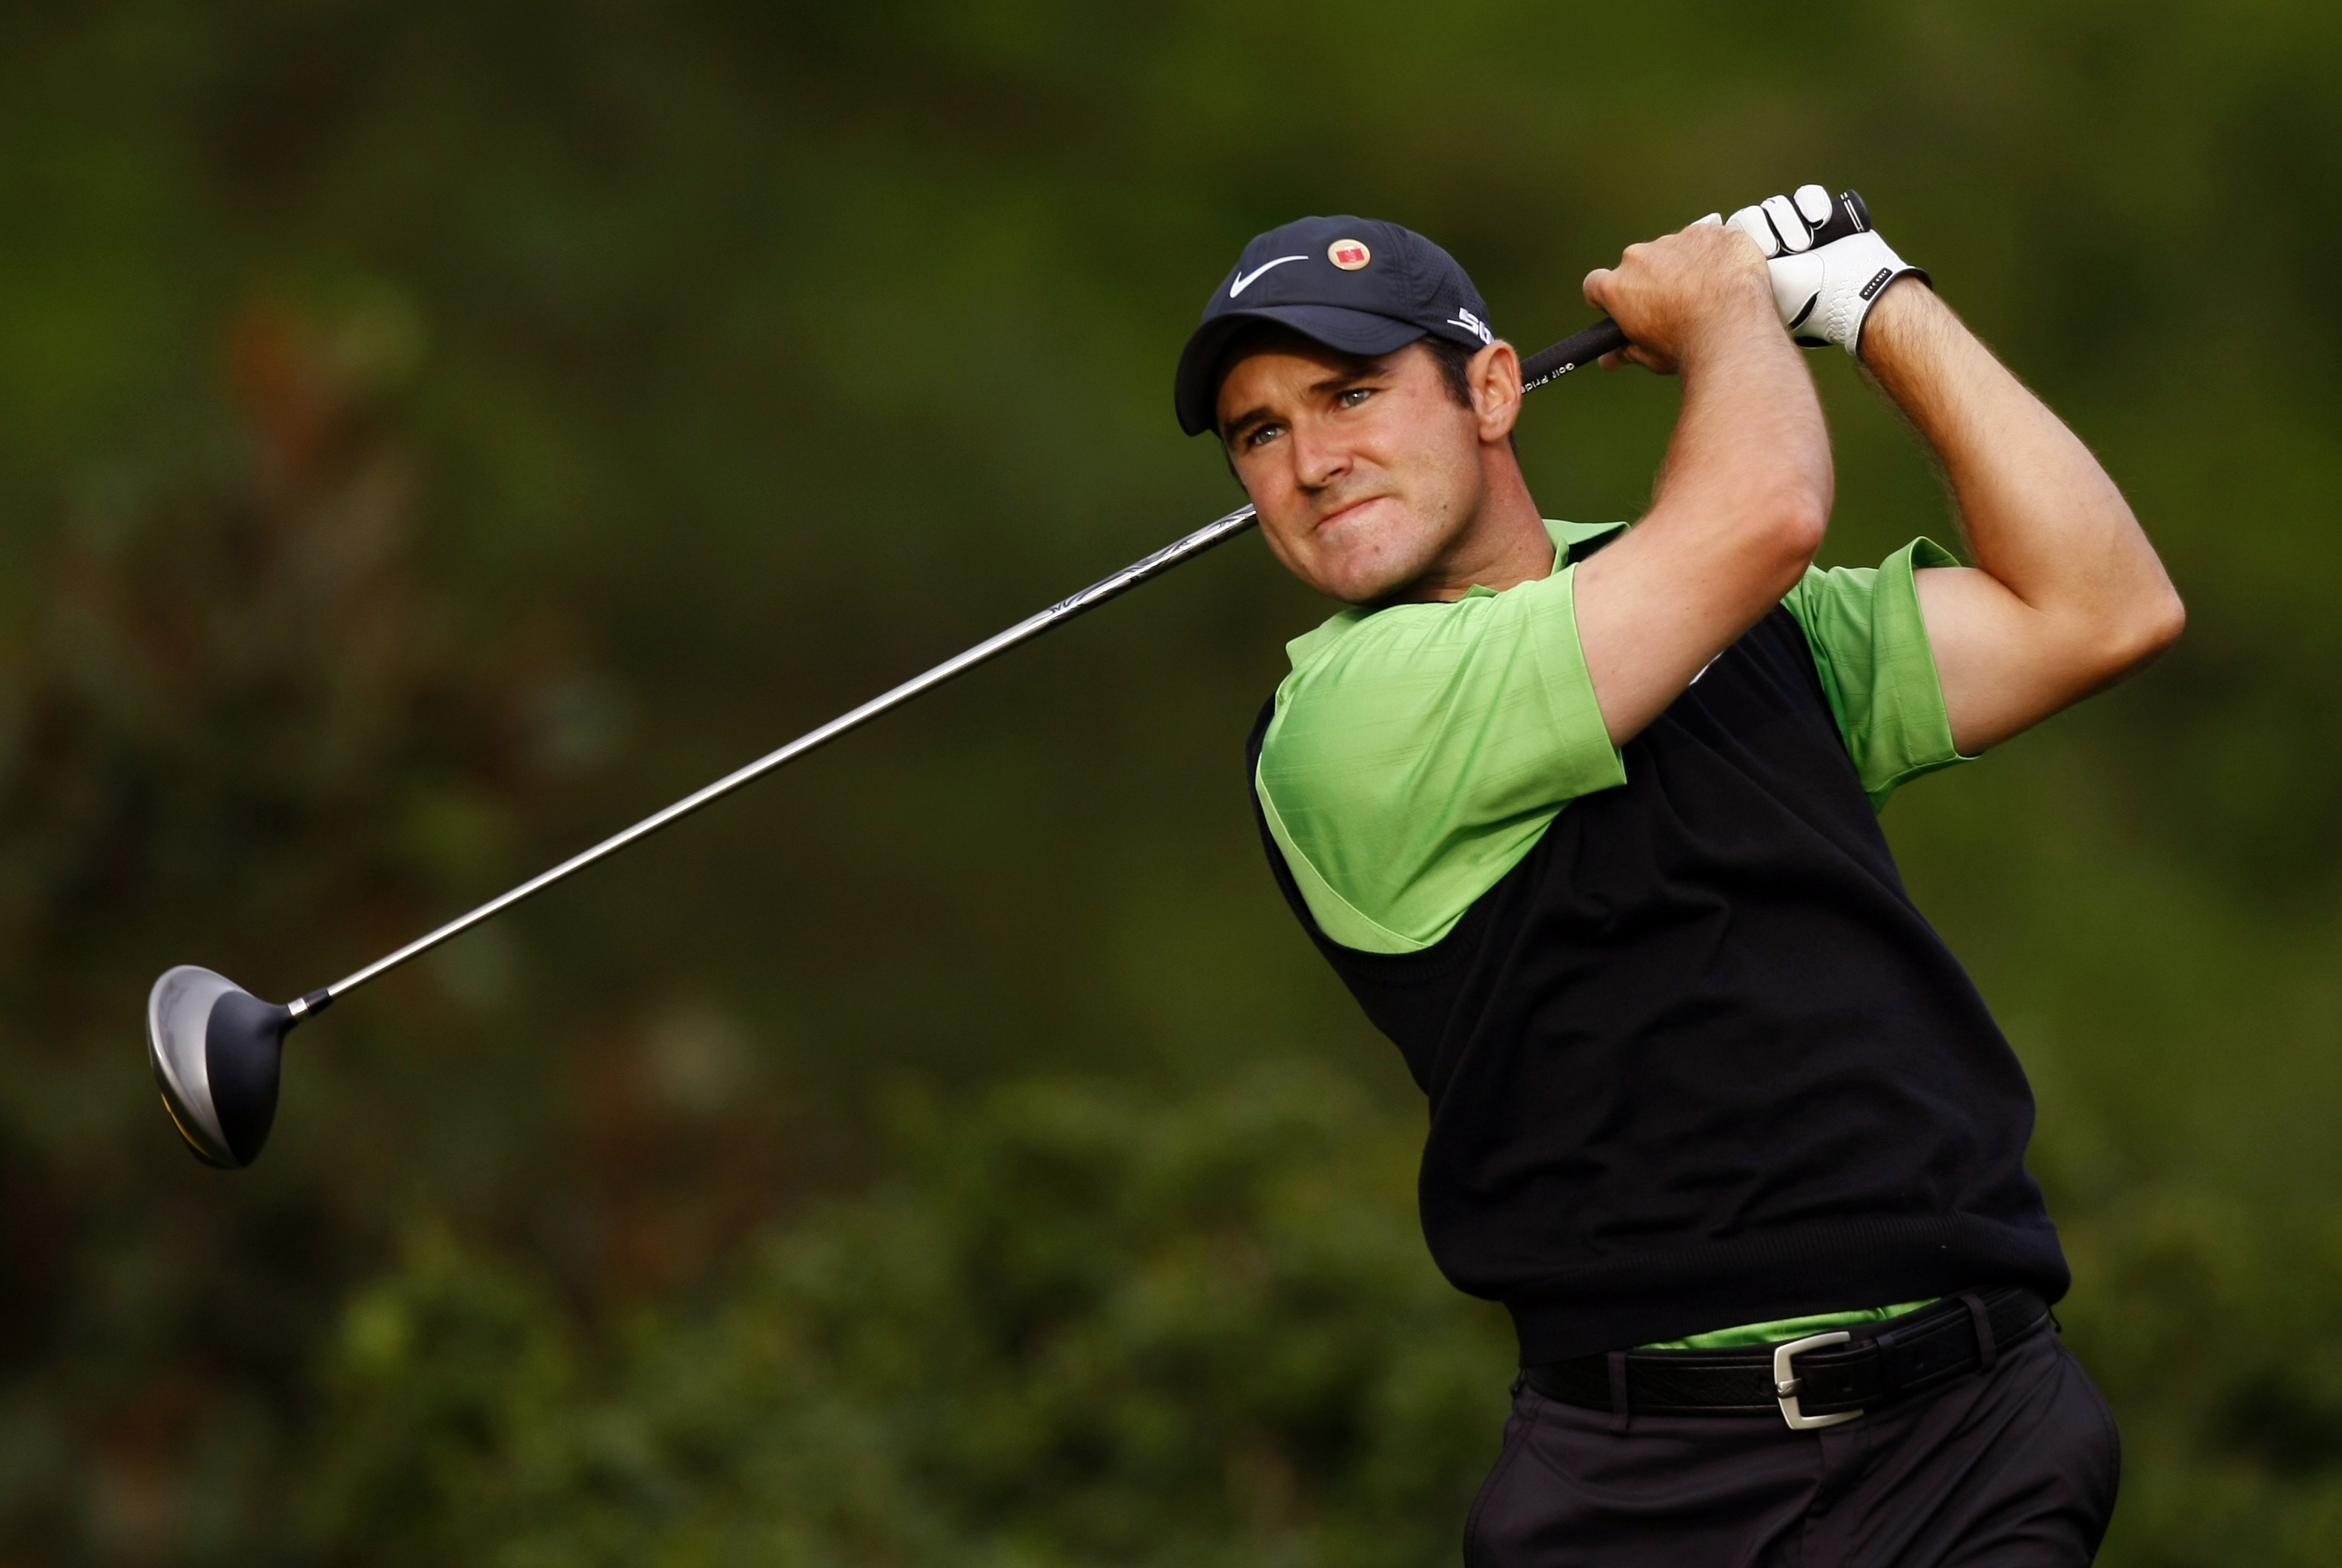 Trevor Immelman watches his tee shot on the 15th hole during the third round of the 2008 Masters golf tournament at the Augusta National Golf Club in ...